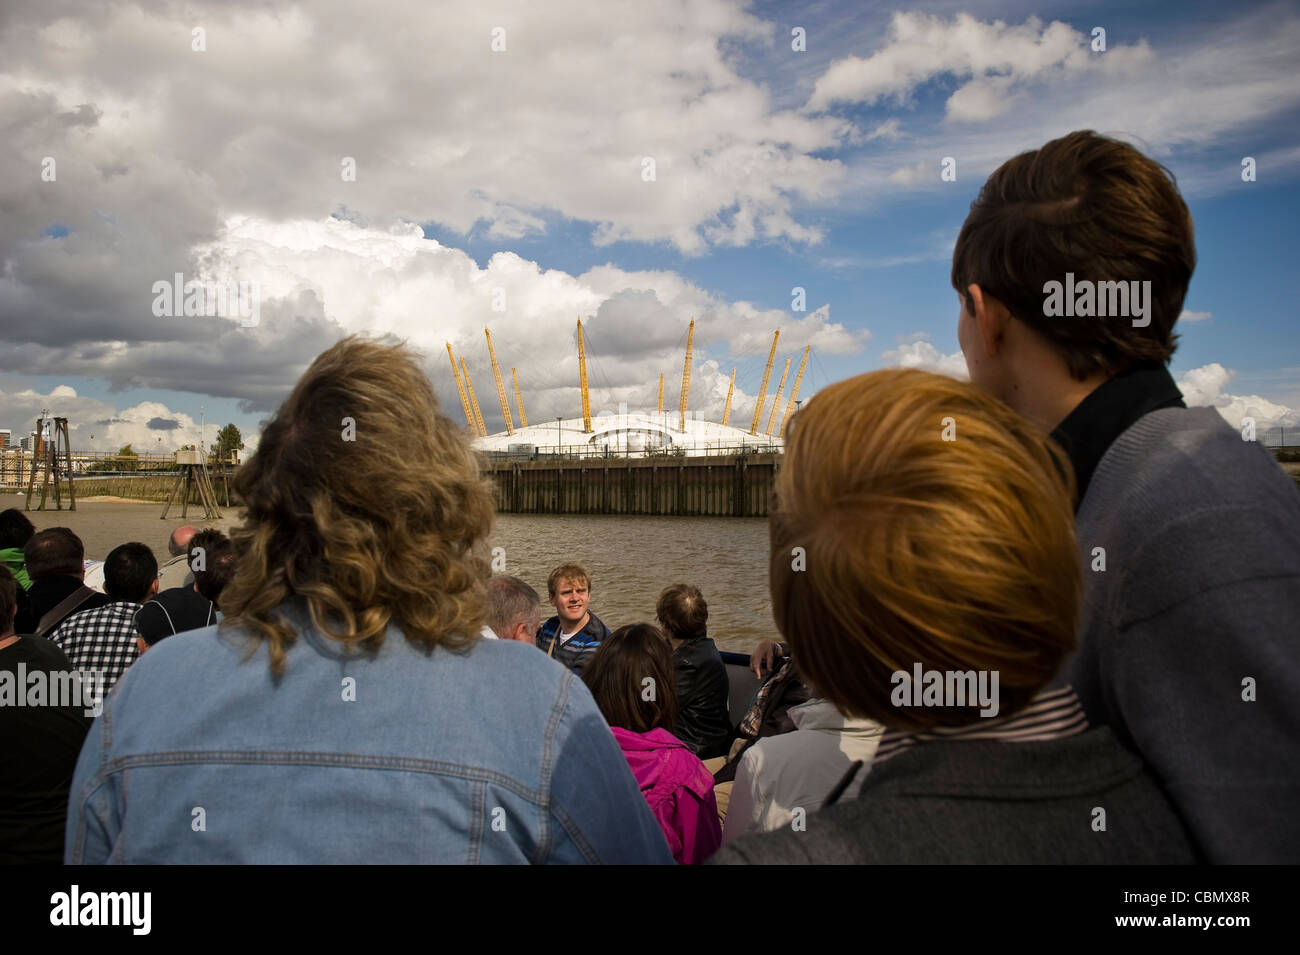 Sightseers on a Thames River boat guided tour, London, UK - Stock Image